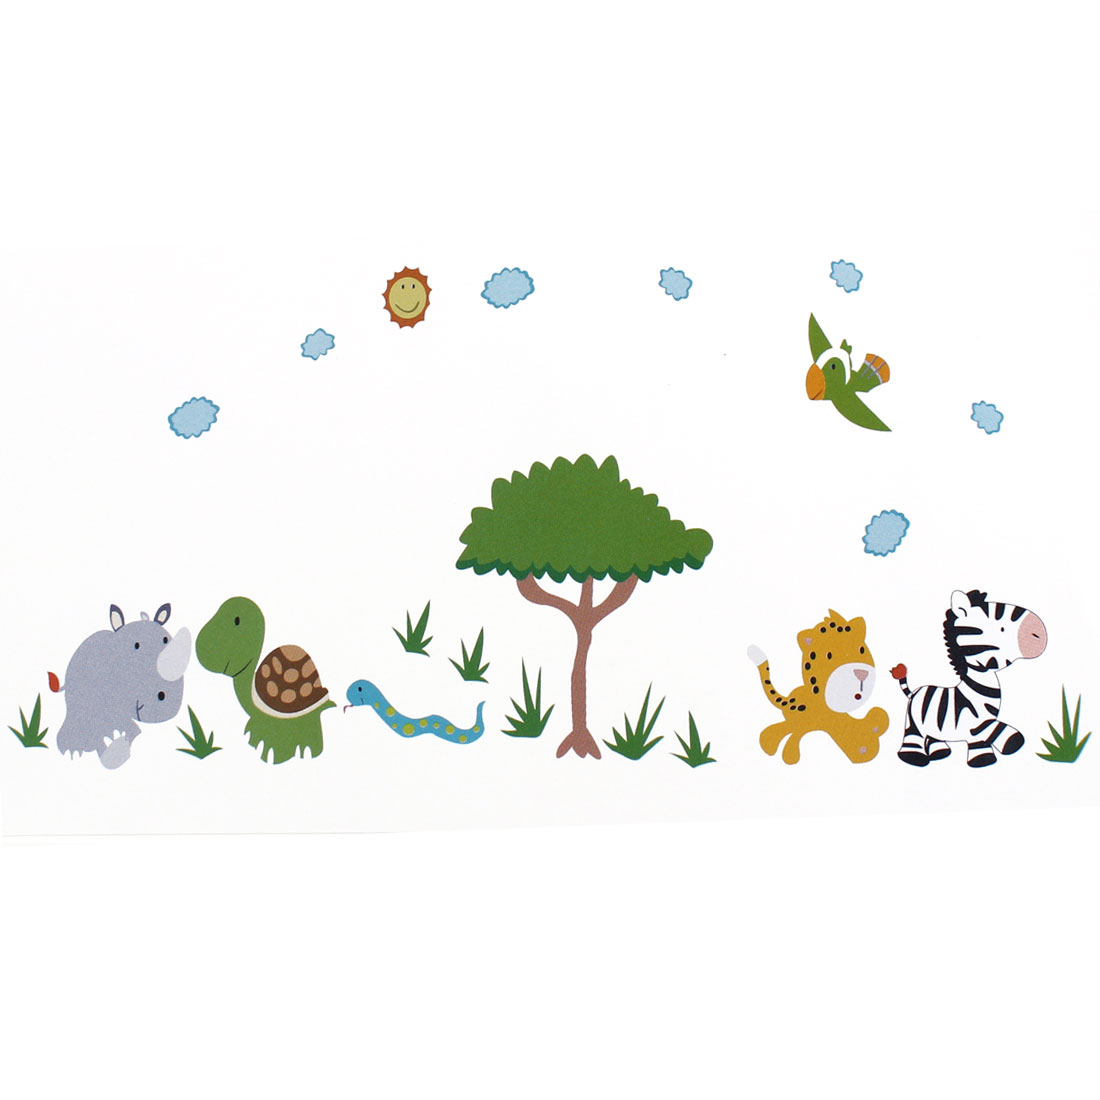 Unique Bargains Cartoon Animal Pattern Removable Wall Decal Sticker DIY Wallpaper Decor